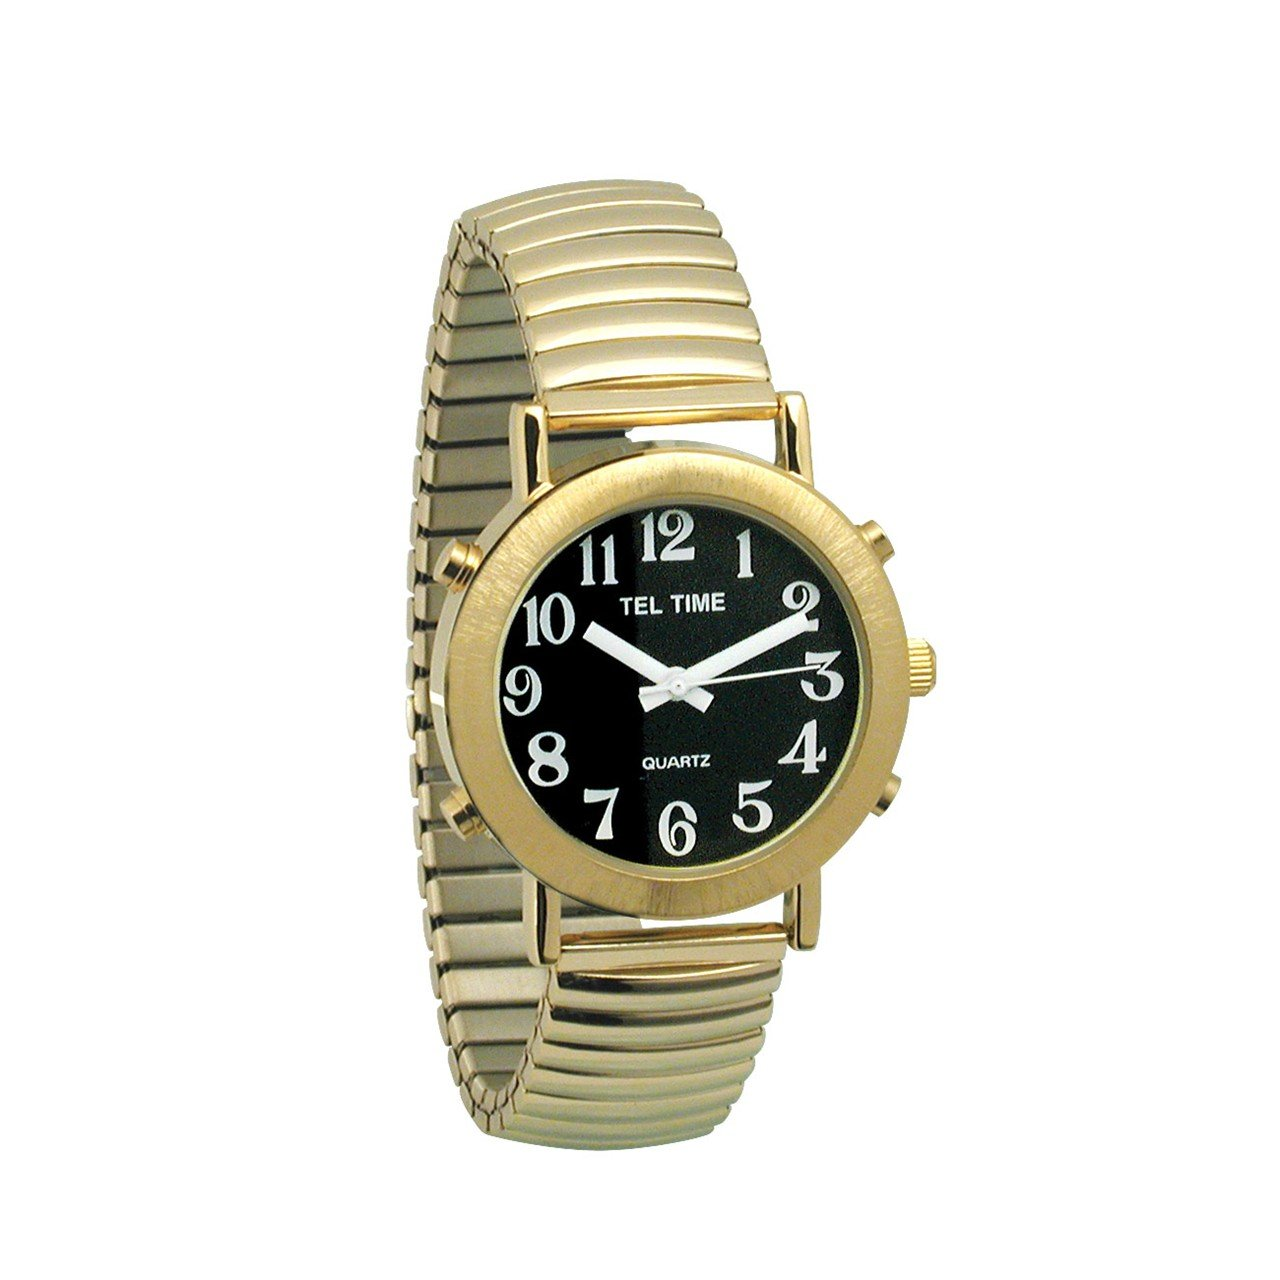 Mens Tel-Time Gold-Tone-Colored Talking Watch with Black Dial-Expansion Band by Tel-Time